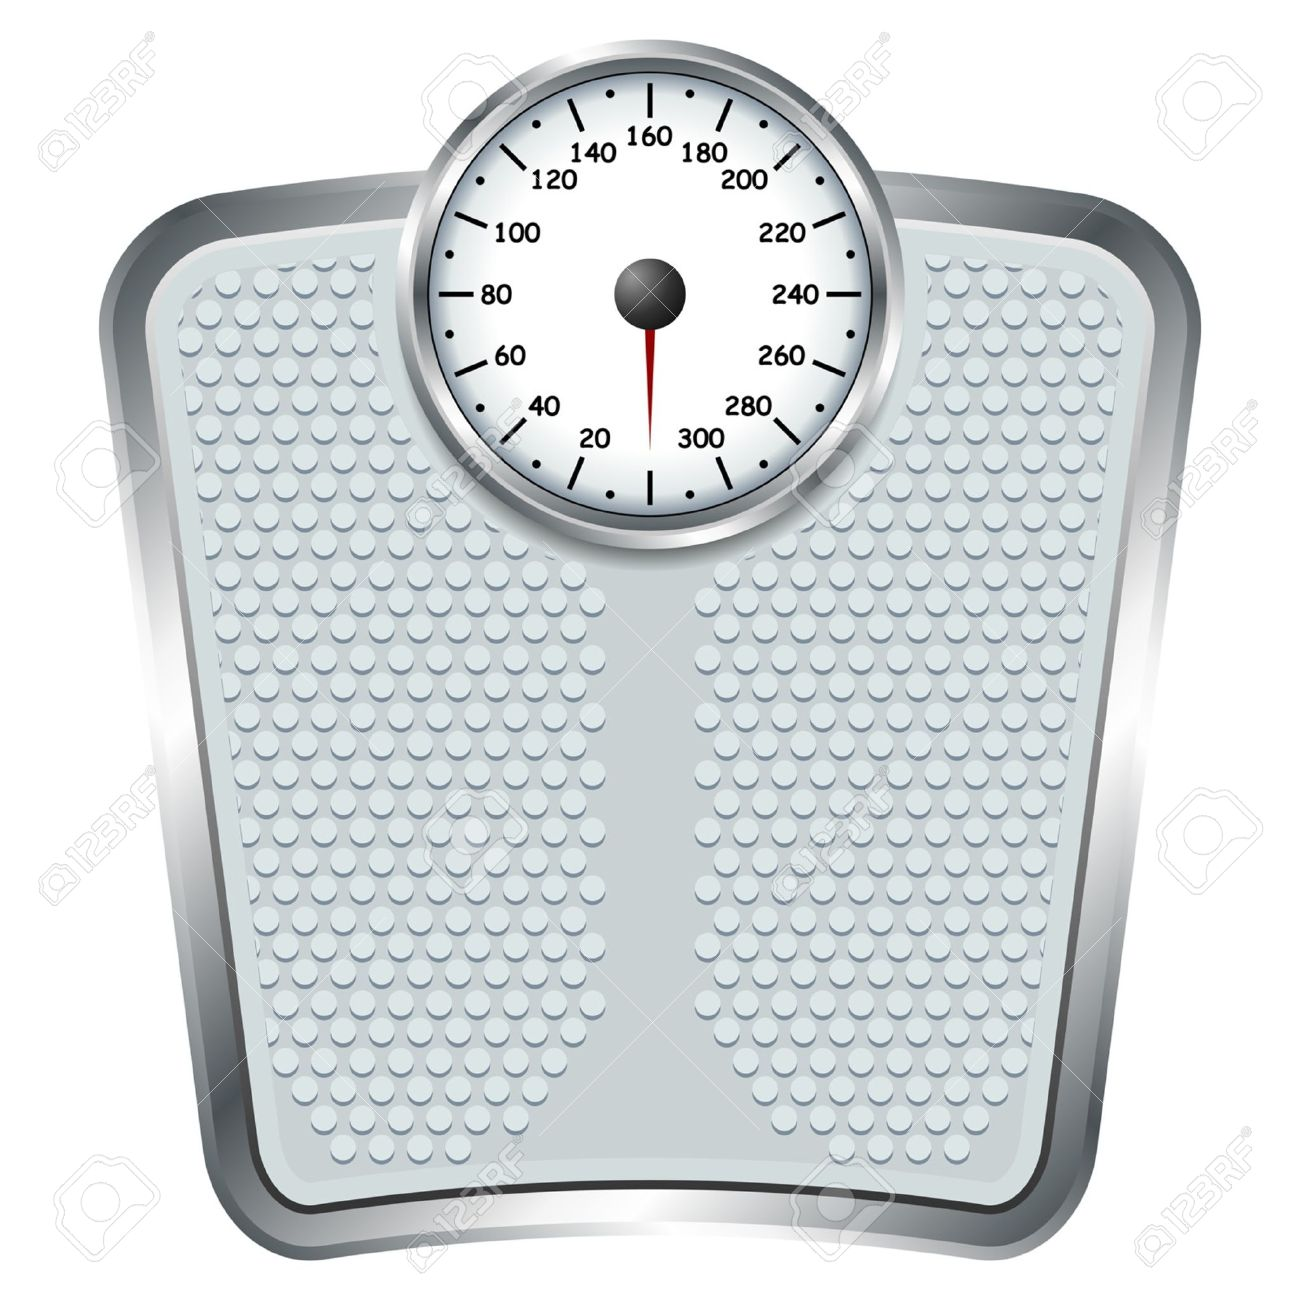 Bathroom Scale Bathroom Scale Isolate Over White Square Background